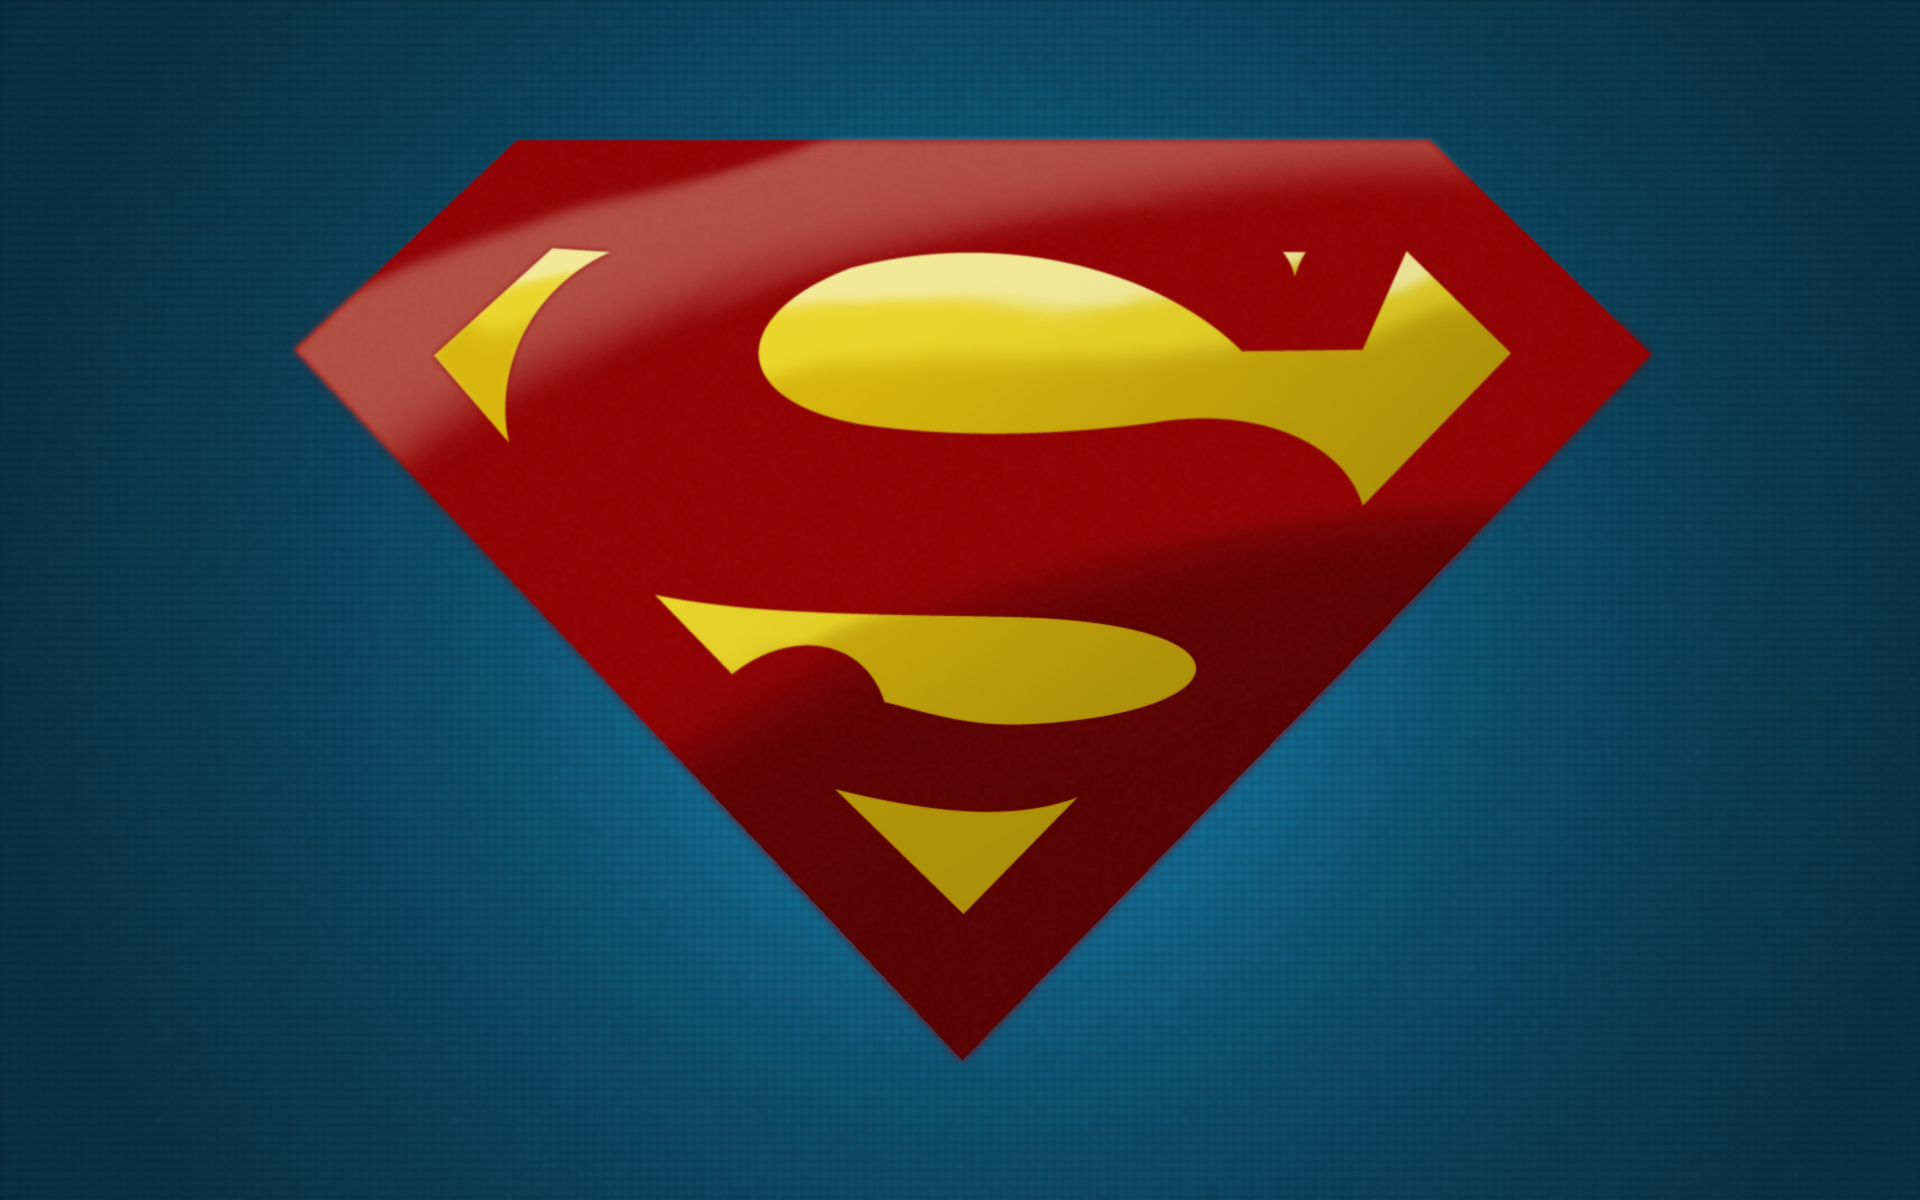 wallpapers drmartwork papers superman images 1920x1200